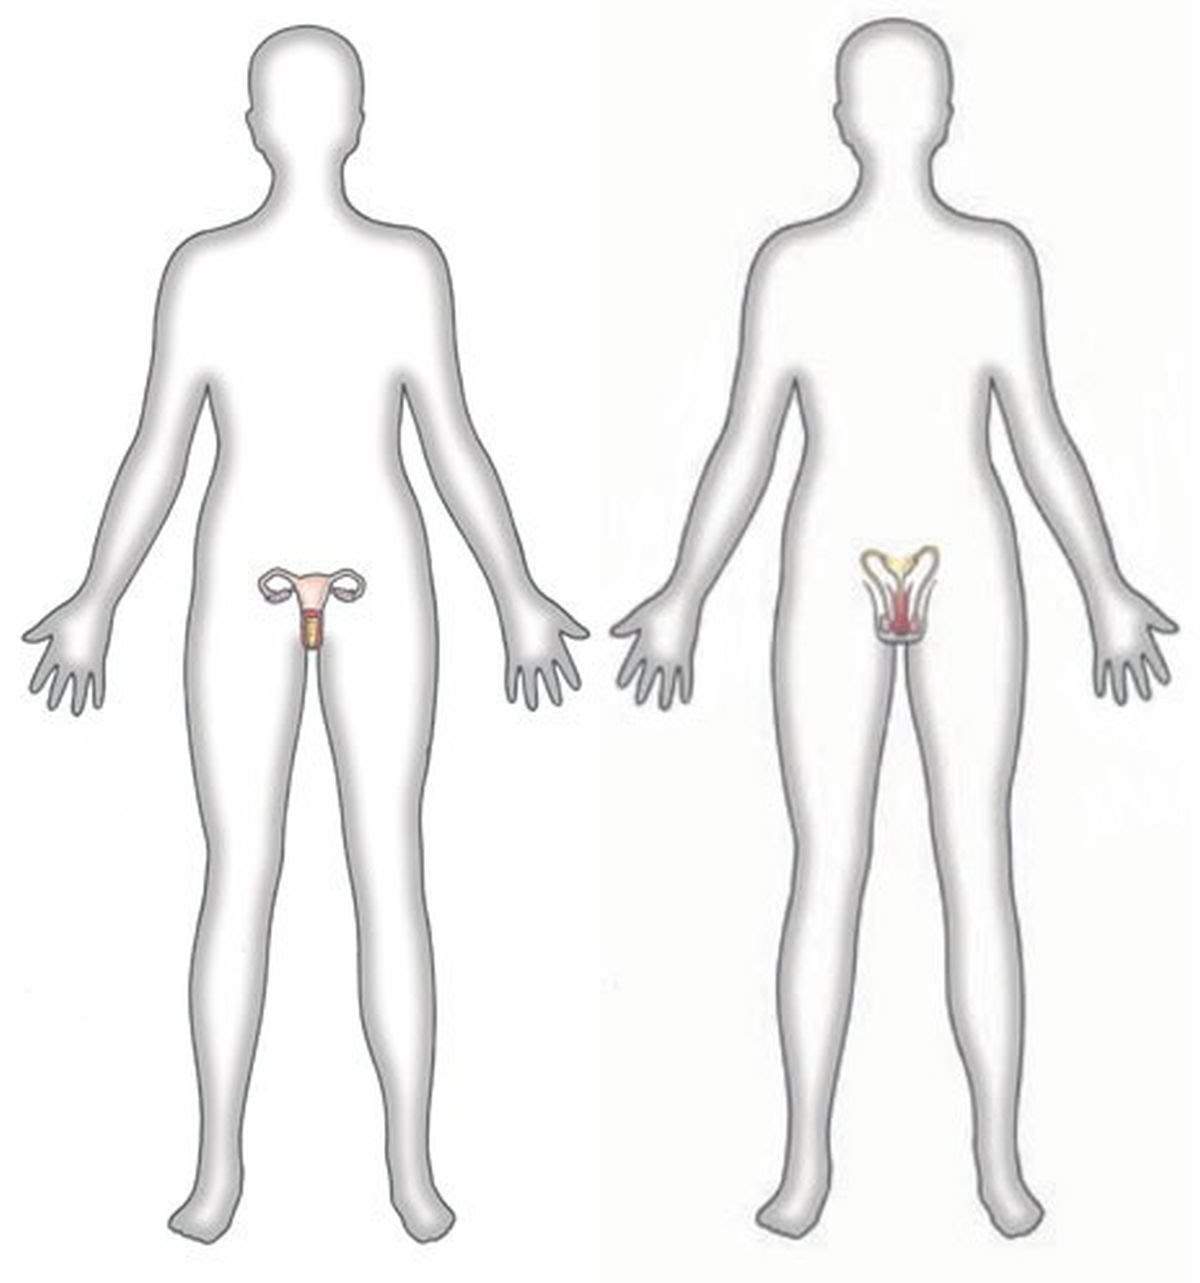 Male and female bodies